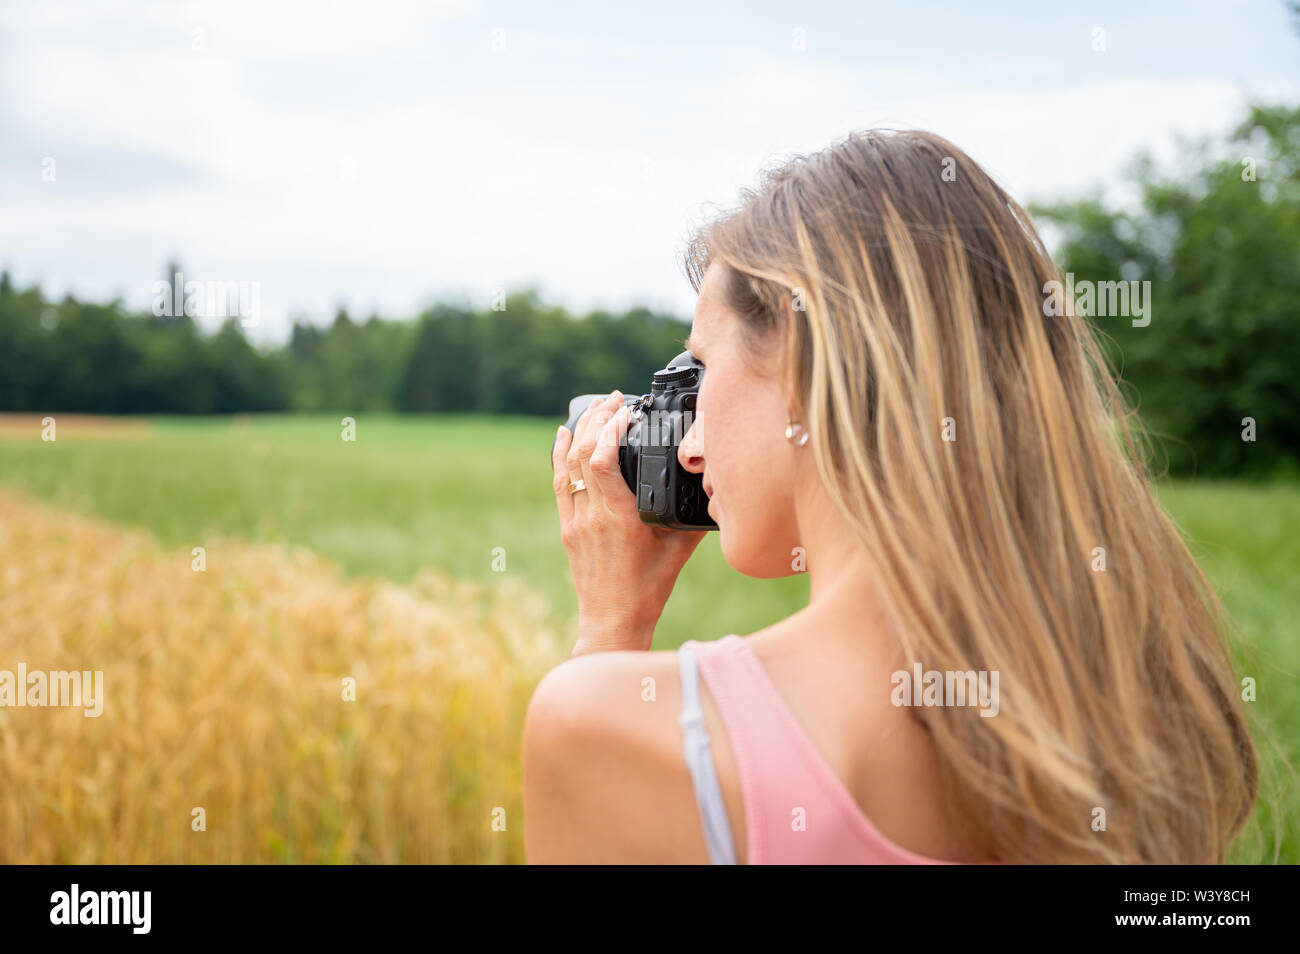 View from behind over the shoulder of a young female photographer taking a photo with black dslr camera of fields in nature. - Stock Image